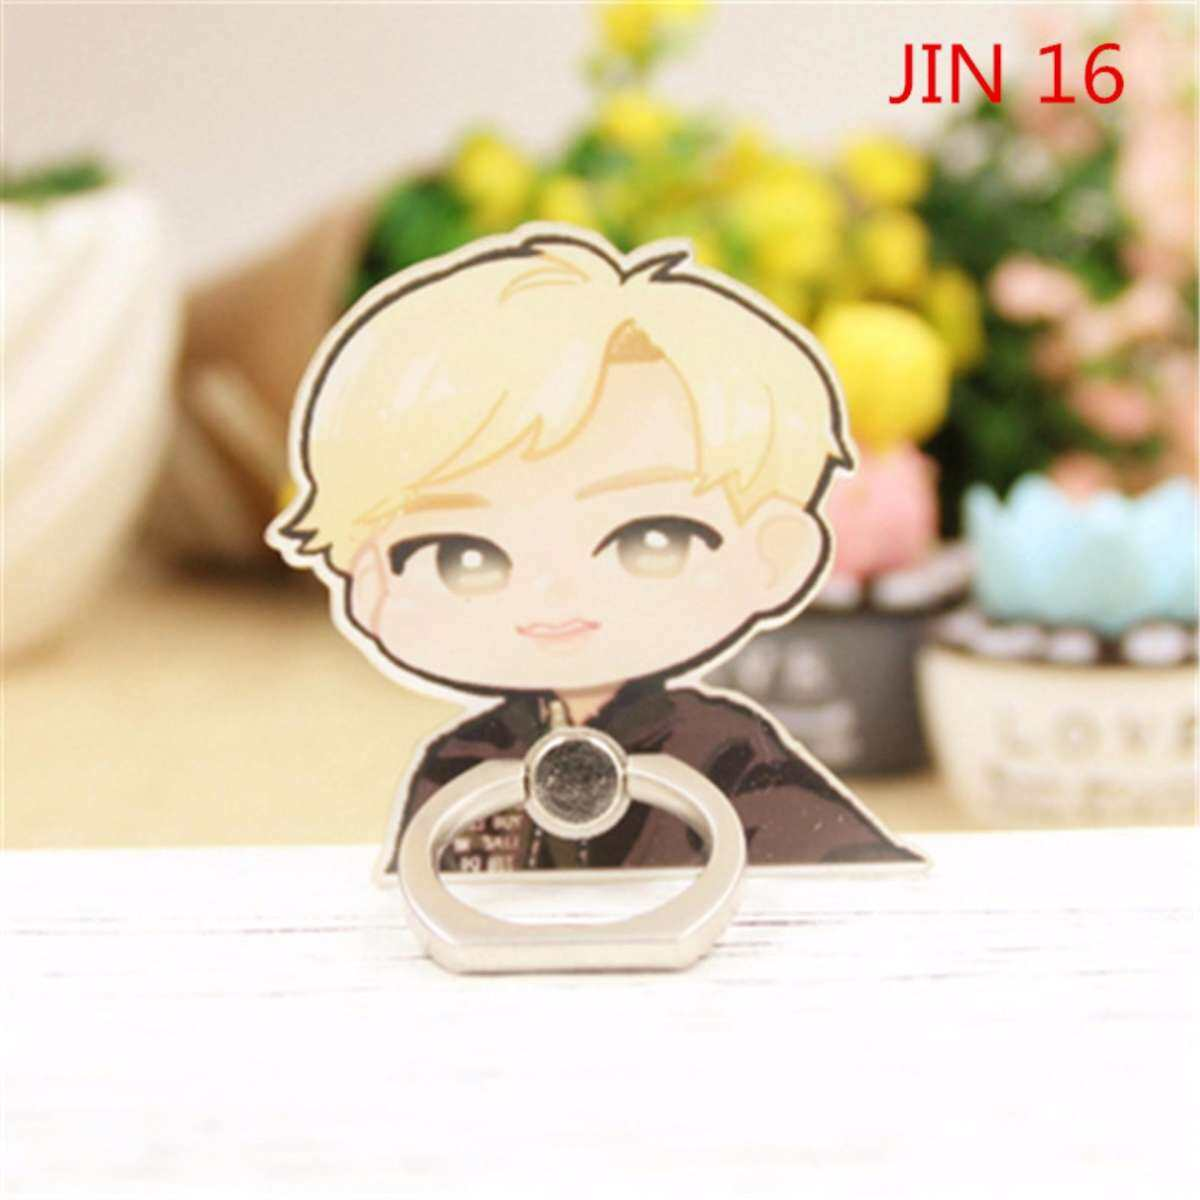 BTS JIN Bangtan Boys Case 360 Degree Rotation Phone Ring Finger Buckle Stand Holder Cell Mobile Phone Stand Accessories Rings ZHK